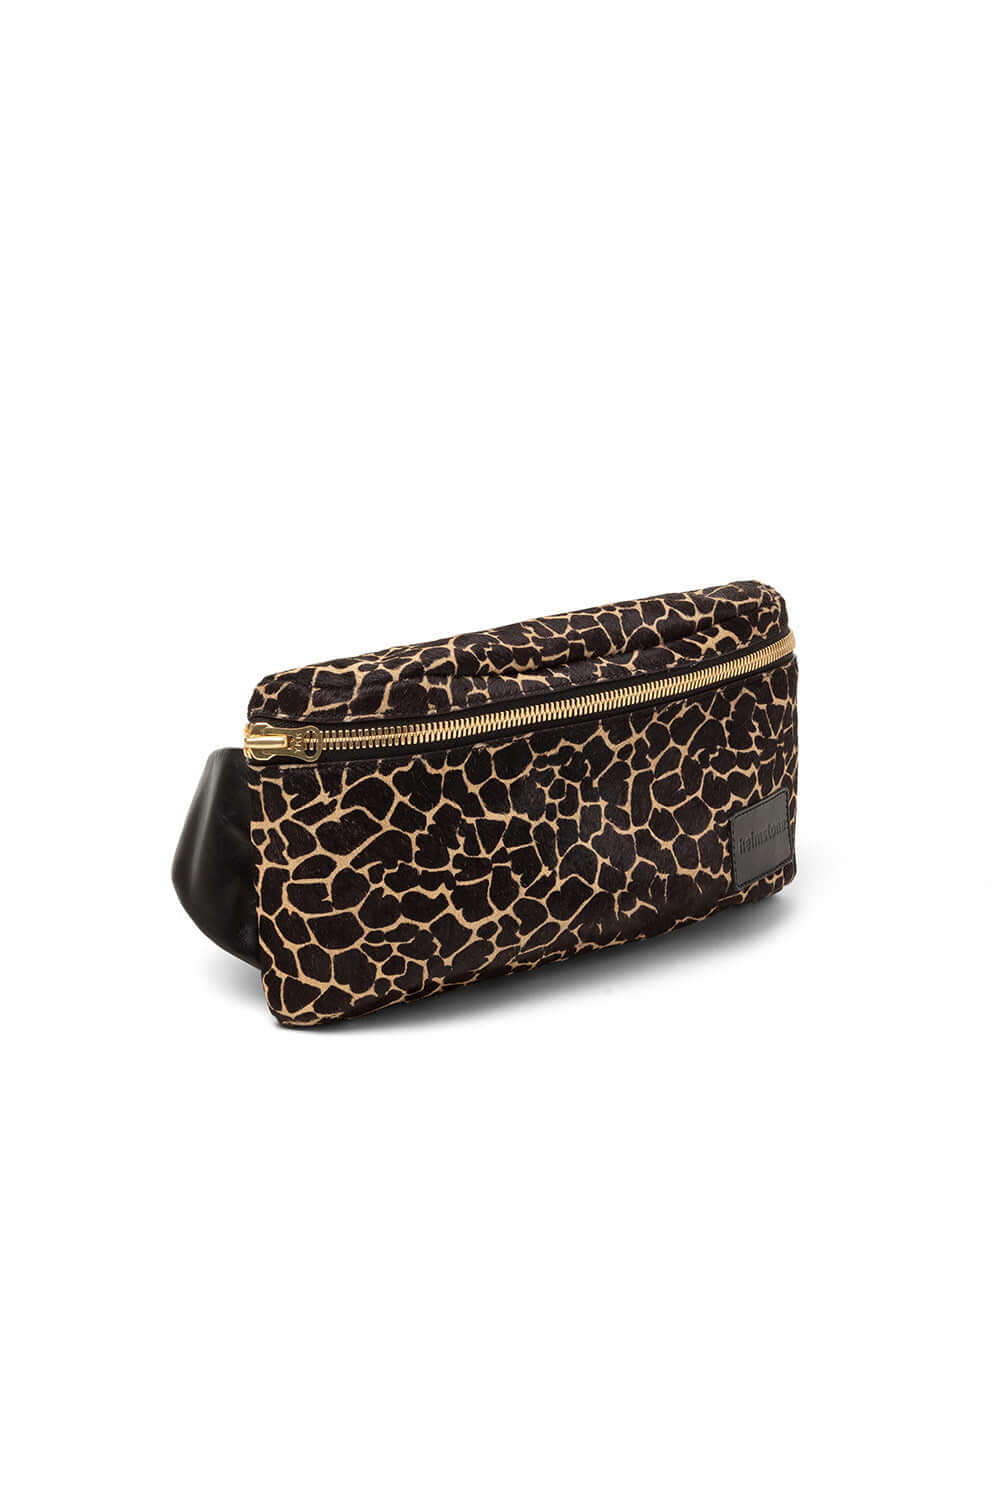 Fanny pack in girafe printed leather